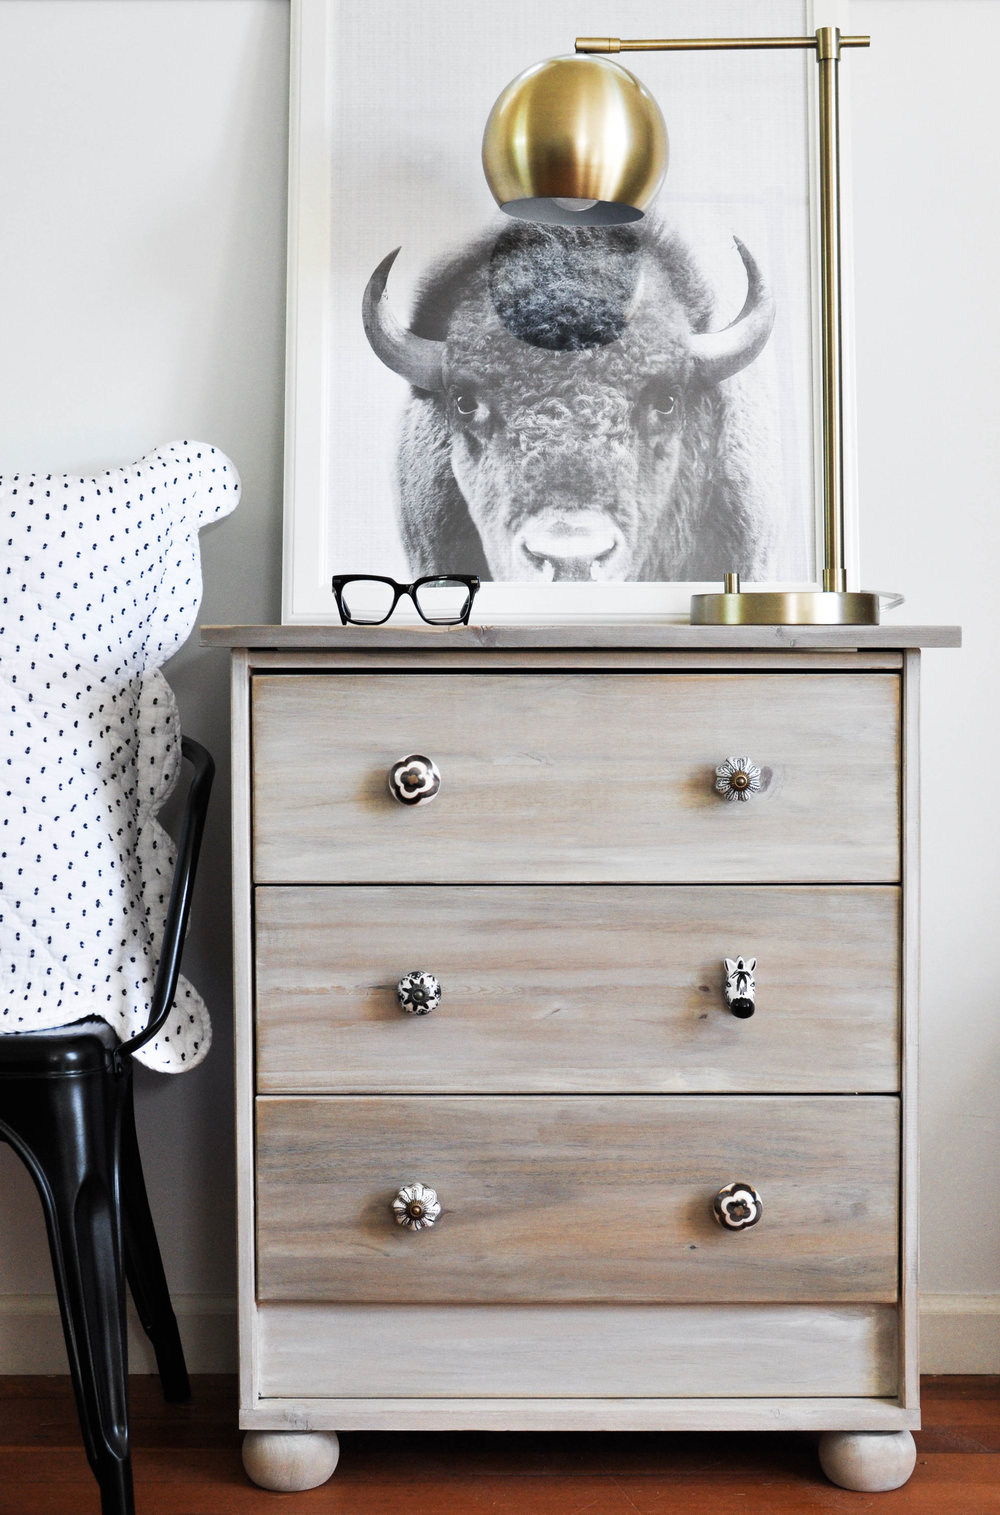 wooden nightstand decorative knobs